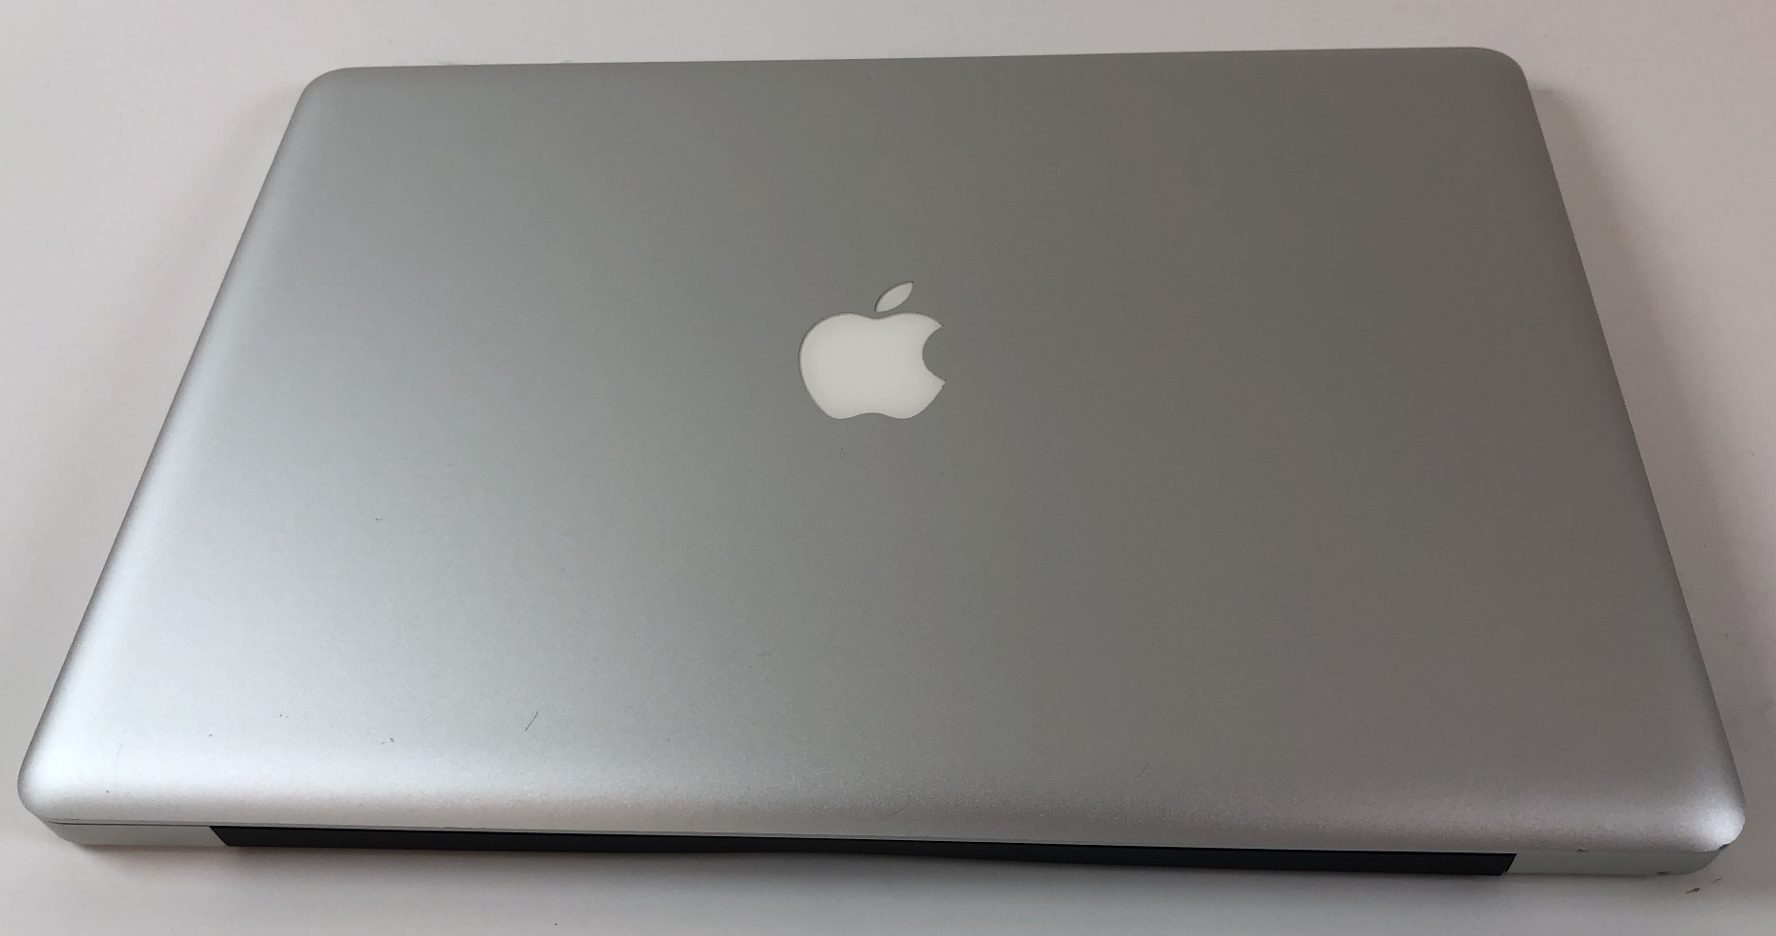 "MacBook Pro 15"" Mid 2012 (Intel Quad-Core i7 2.3 GHz 4 GB RAM 500 GB HDD), Intel Quad-Core i7 2.3 GHz, 4 GB RAM, 500 GB HDD, Kuva 2"